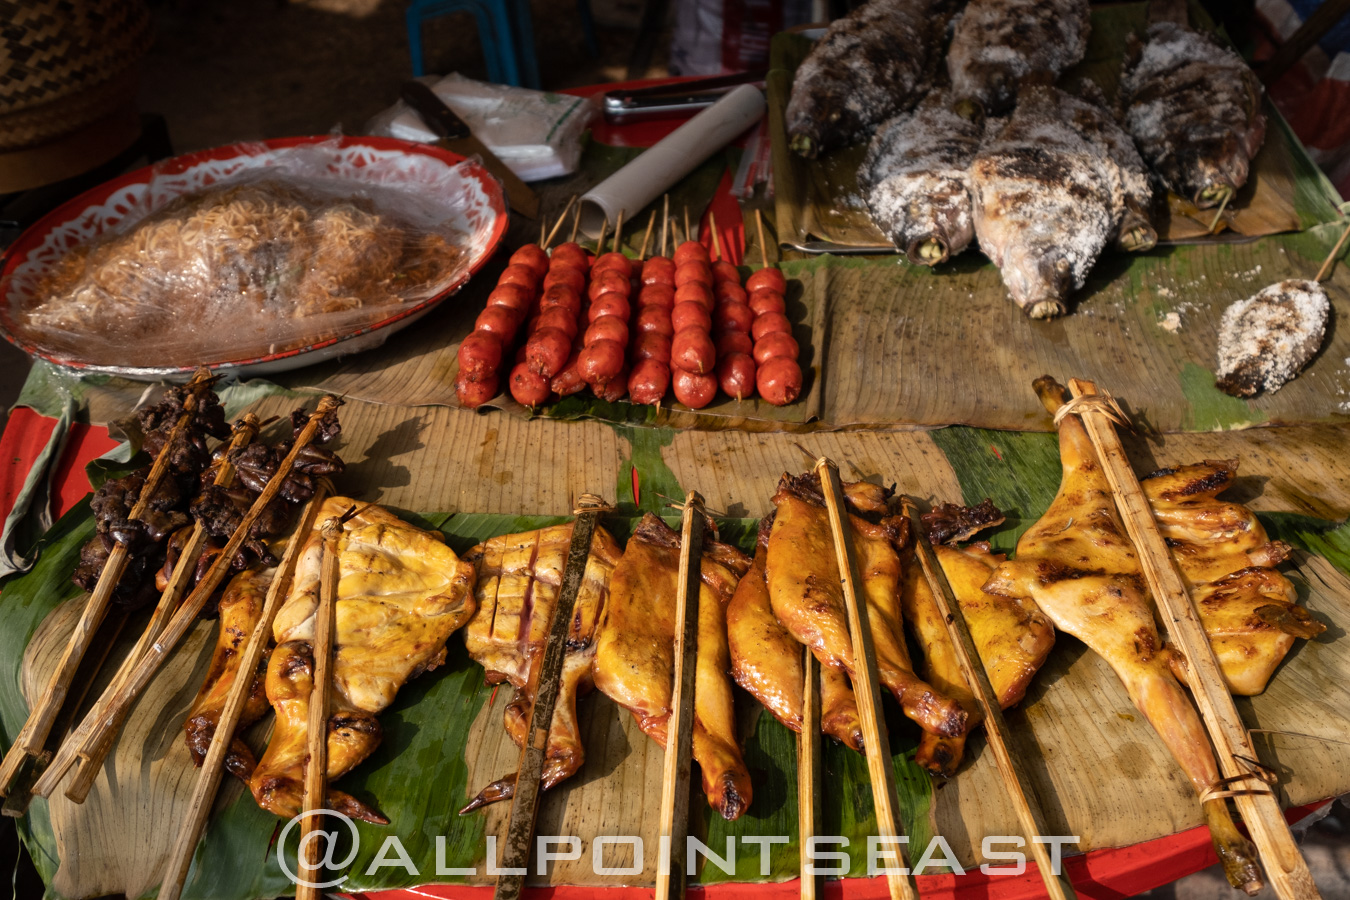 Laos, night market barbeque by Jeff Perigois